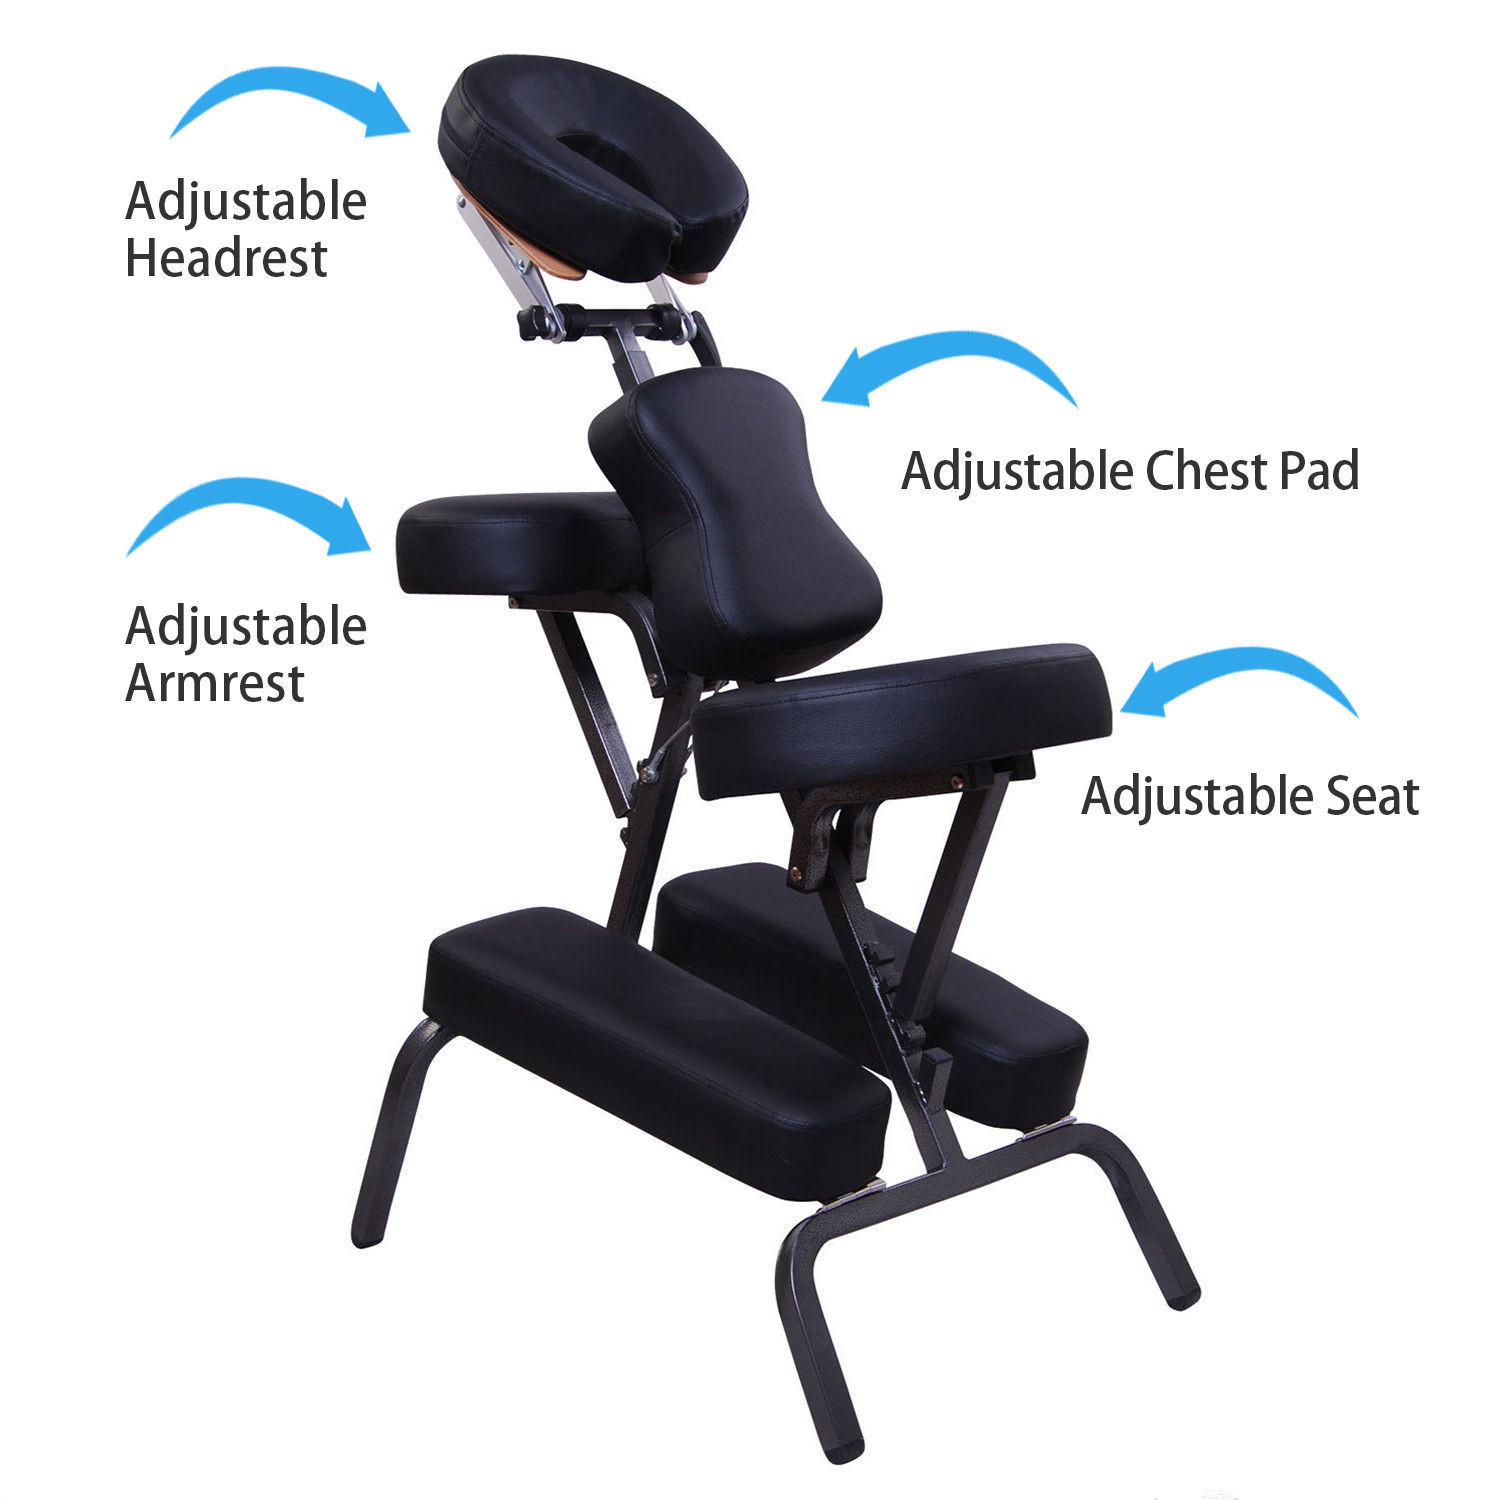 tattoo artist chair ergonomic thoracic support 44 portable pu leather pad travel massage spa salon the a101062 folding offers comfort as well portability every desires suitable for use in workshops